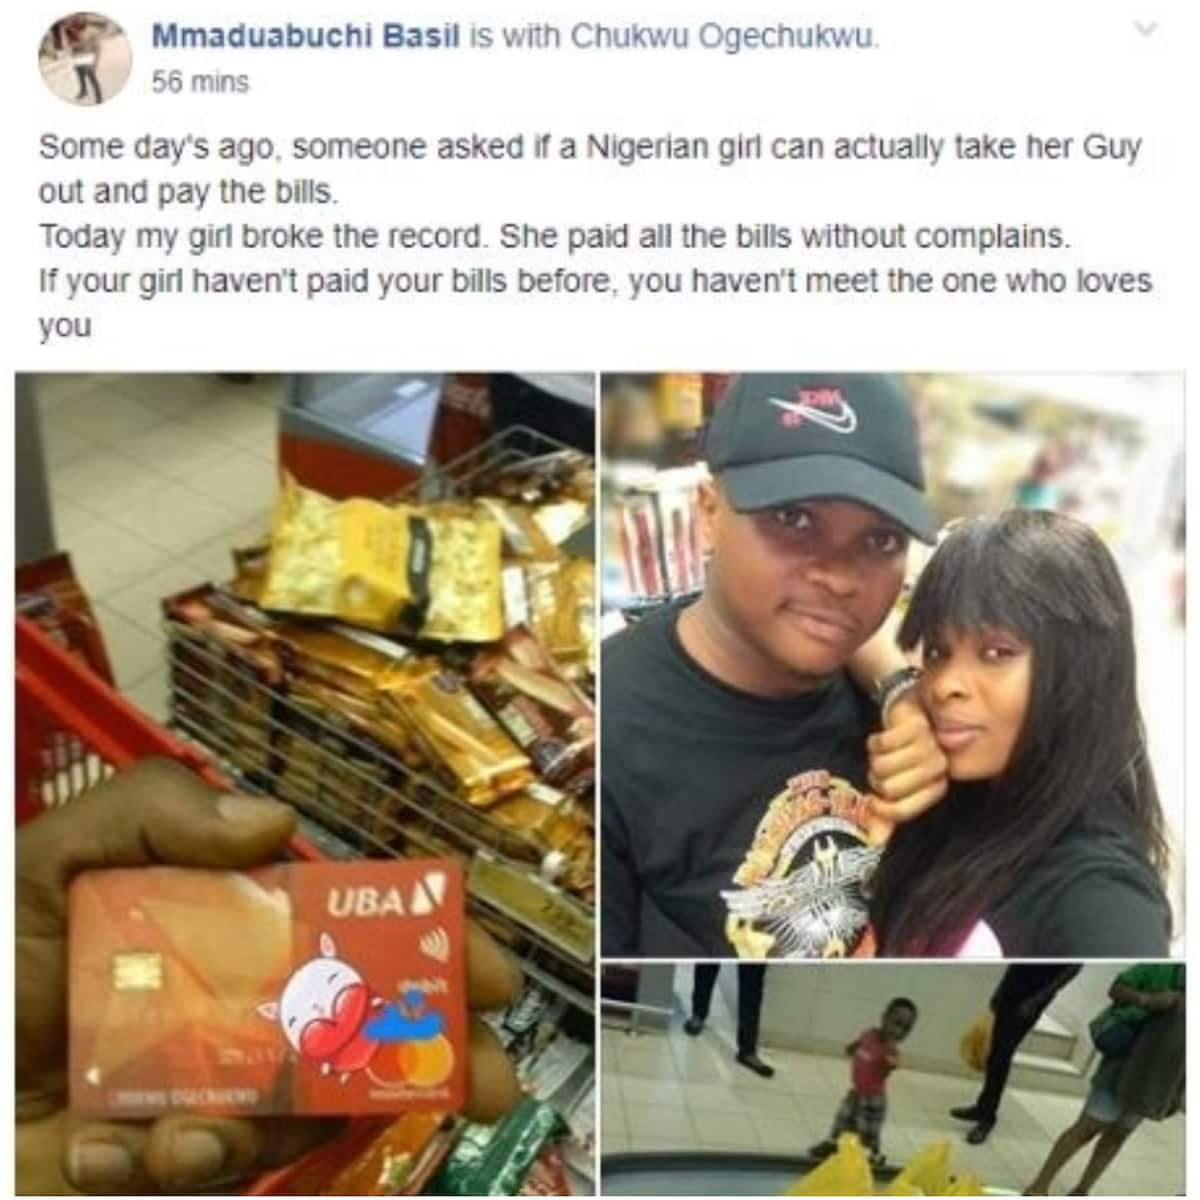 Nigerian man excited as girlfriend breaks record by taking him out and paying the bills